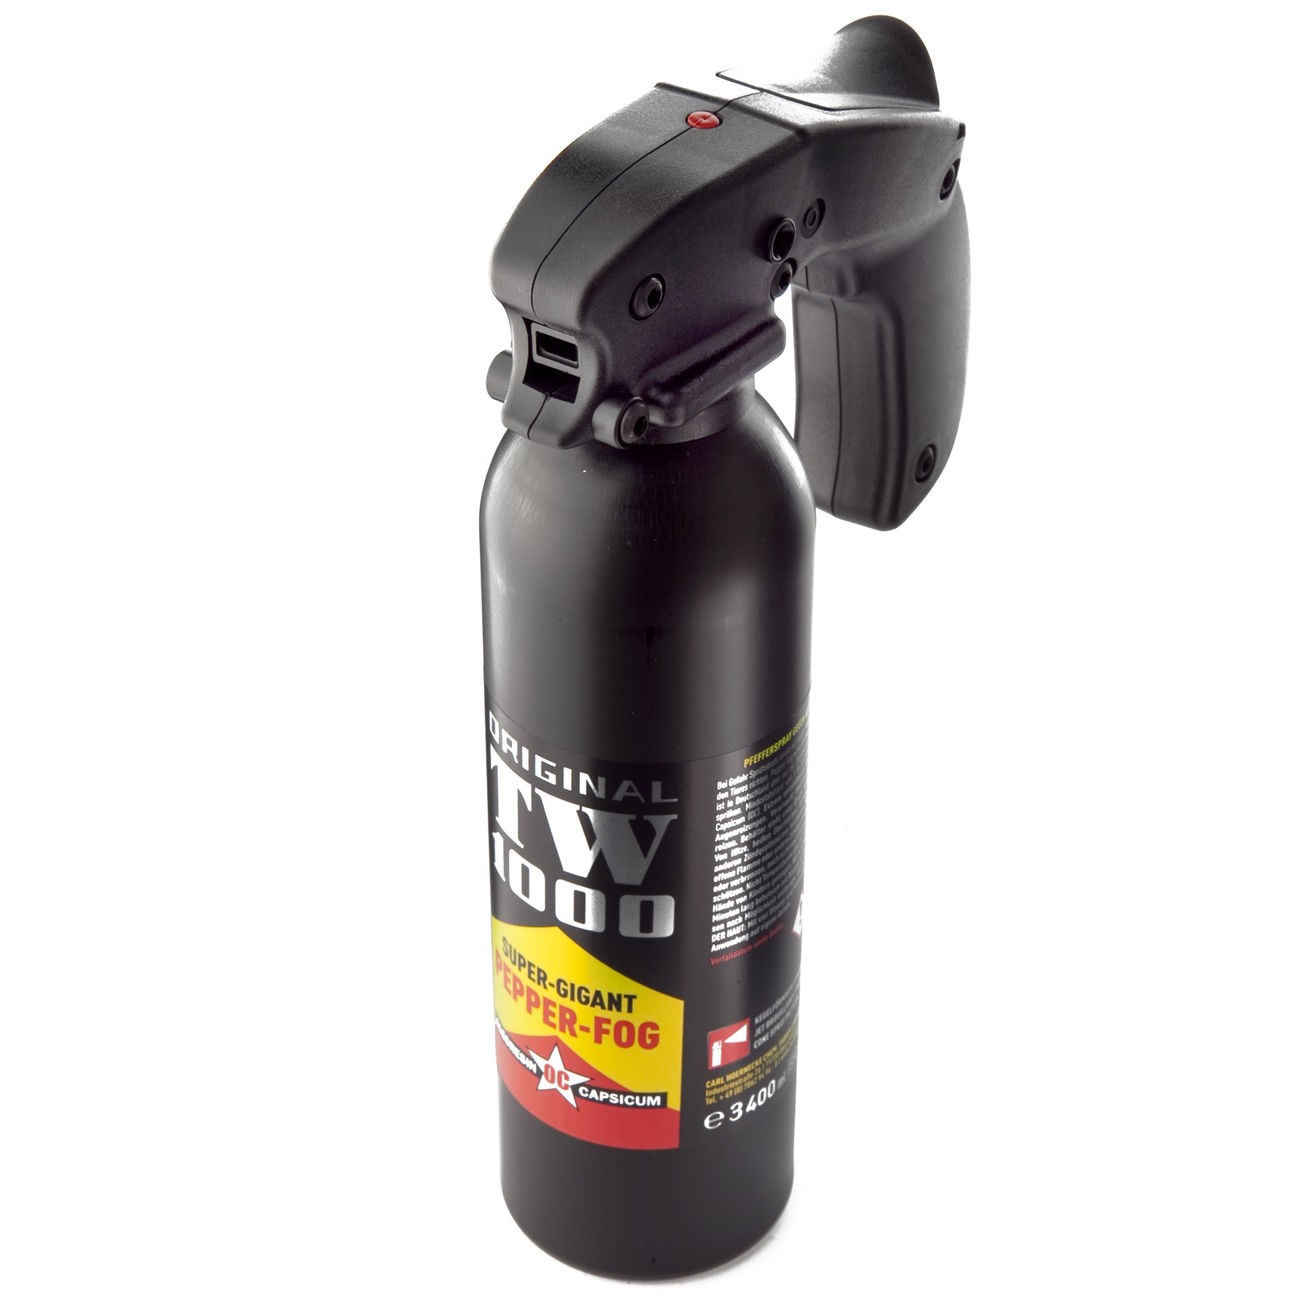 Abwehrspray TW1000 Pfefferspray Super Giant Professional, 400 ml 2